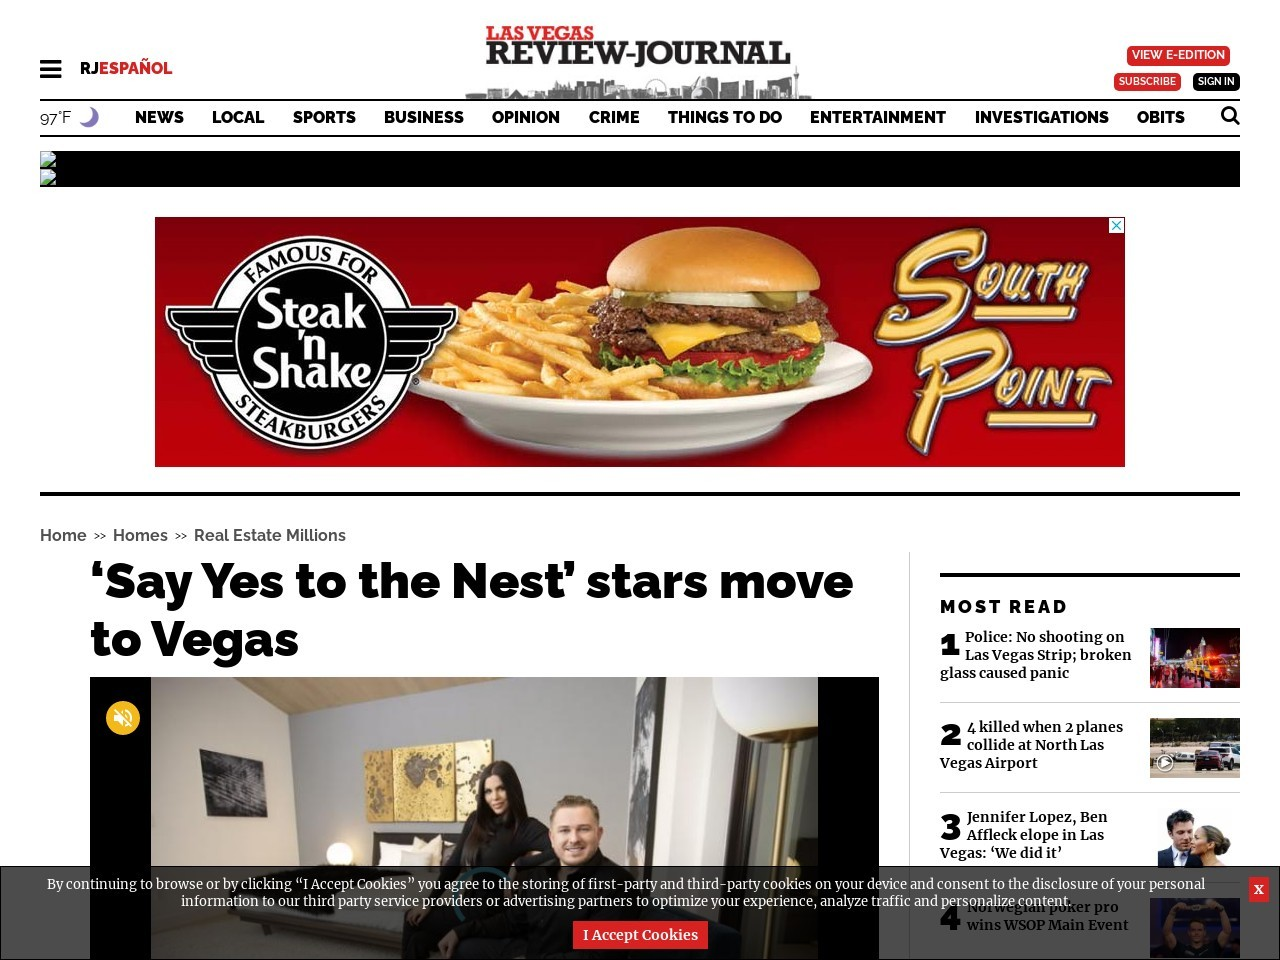 'Say Yes to the Nest' stars move to Vegas